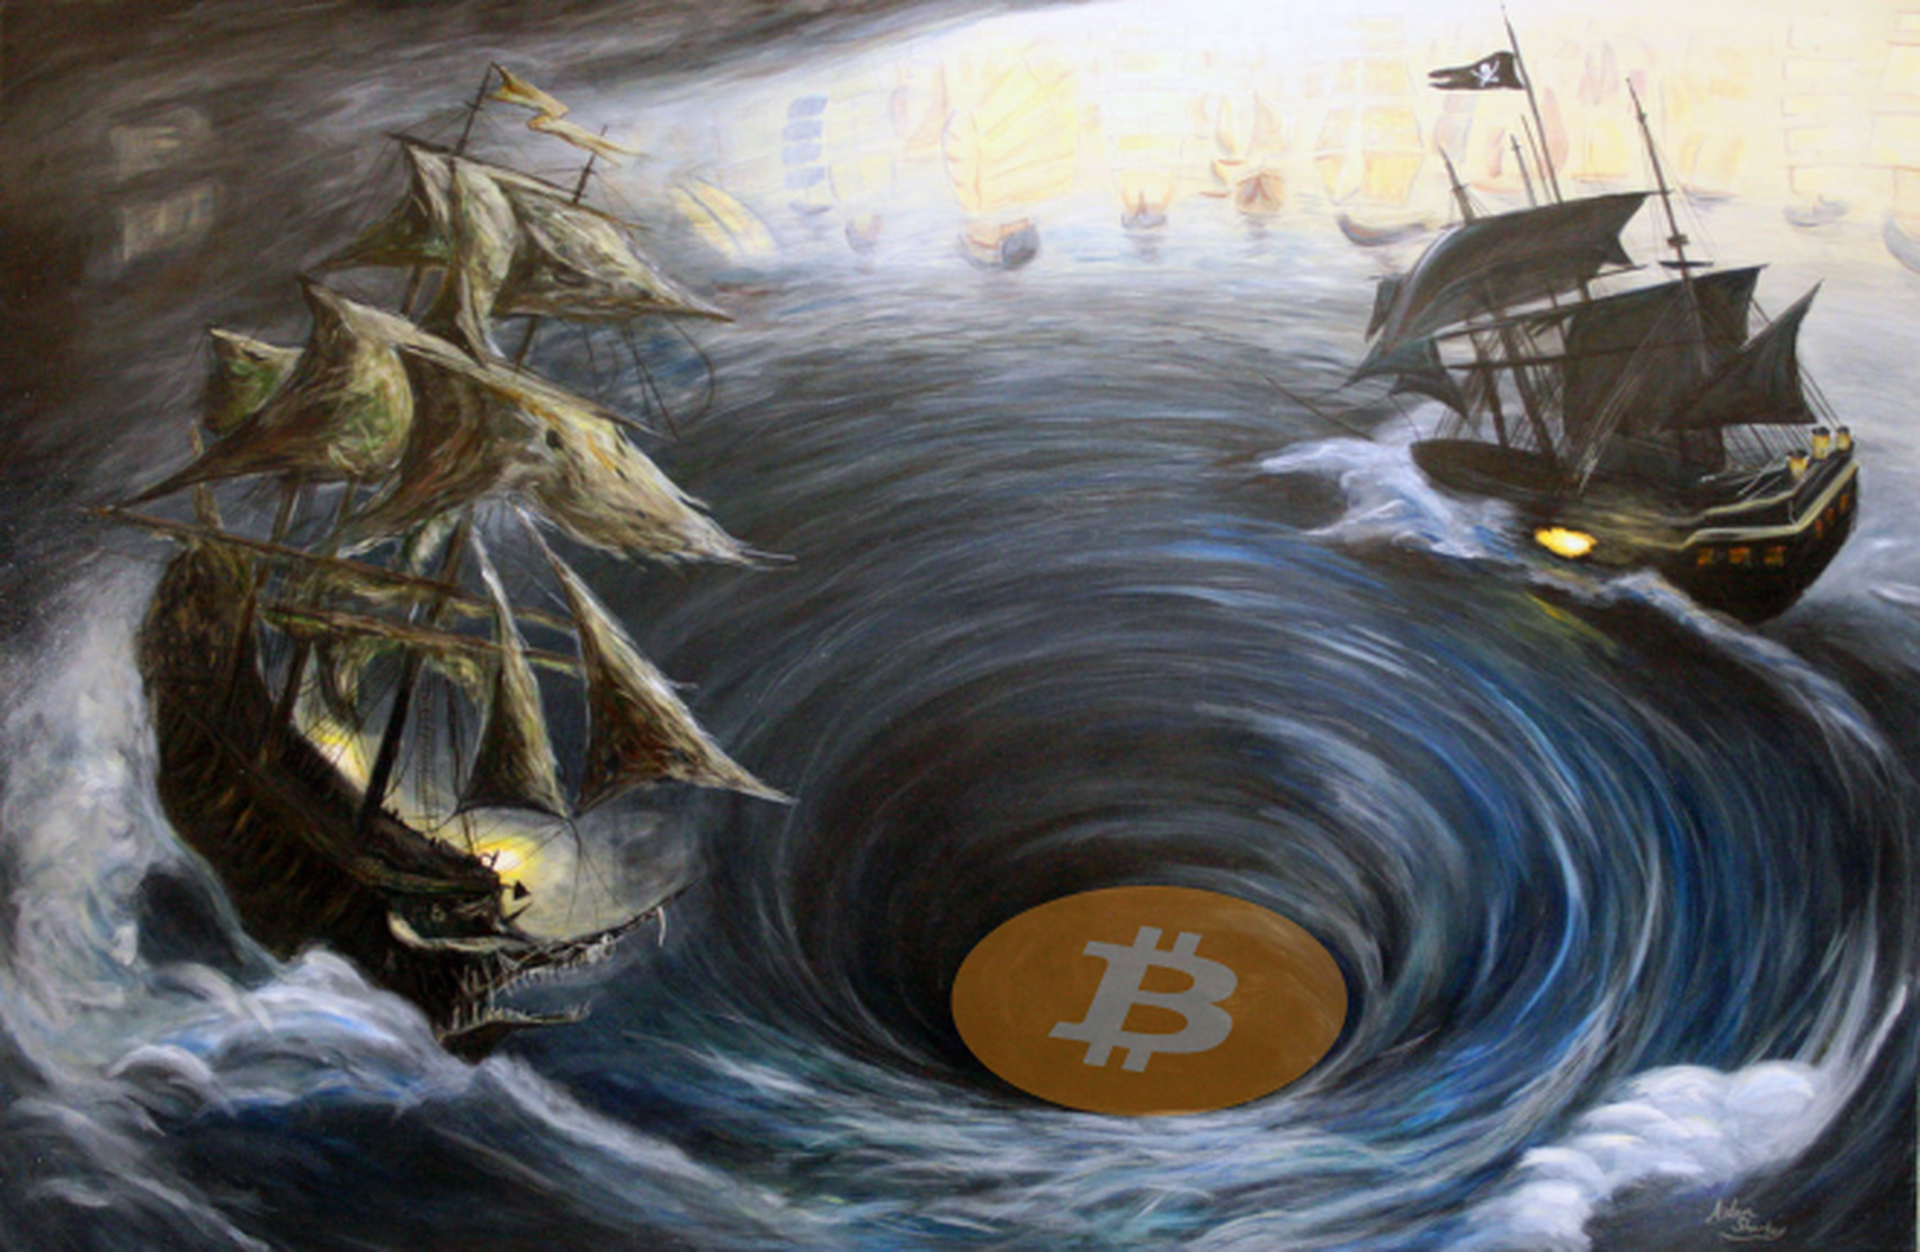 The Bitcoin Journey